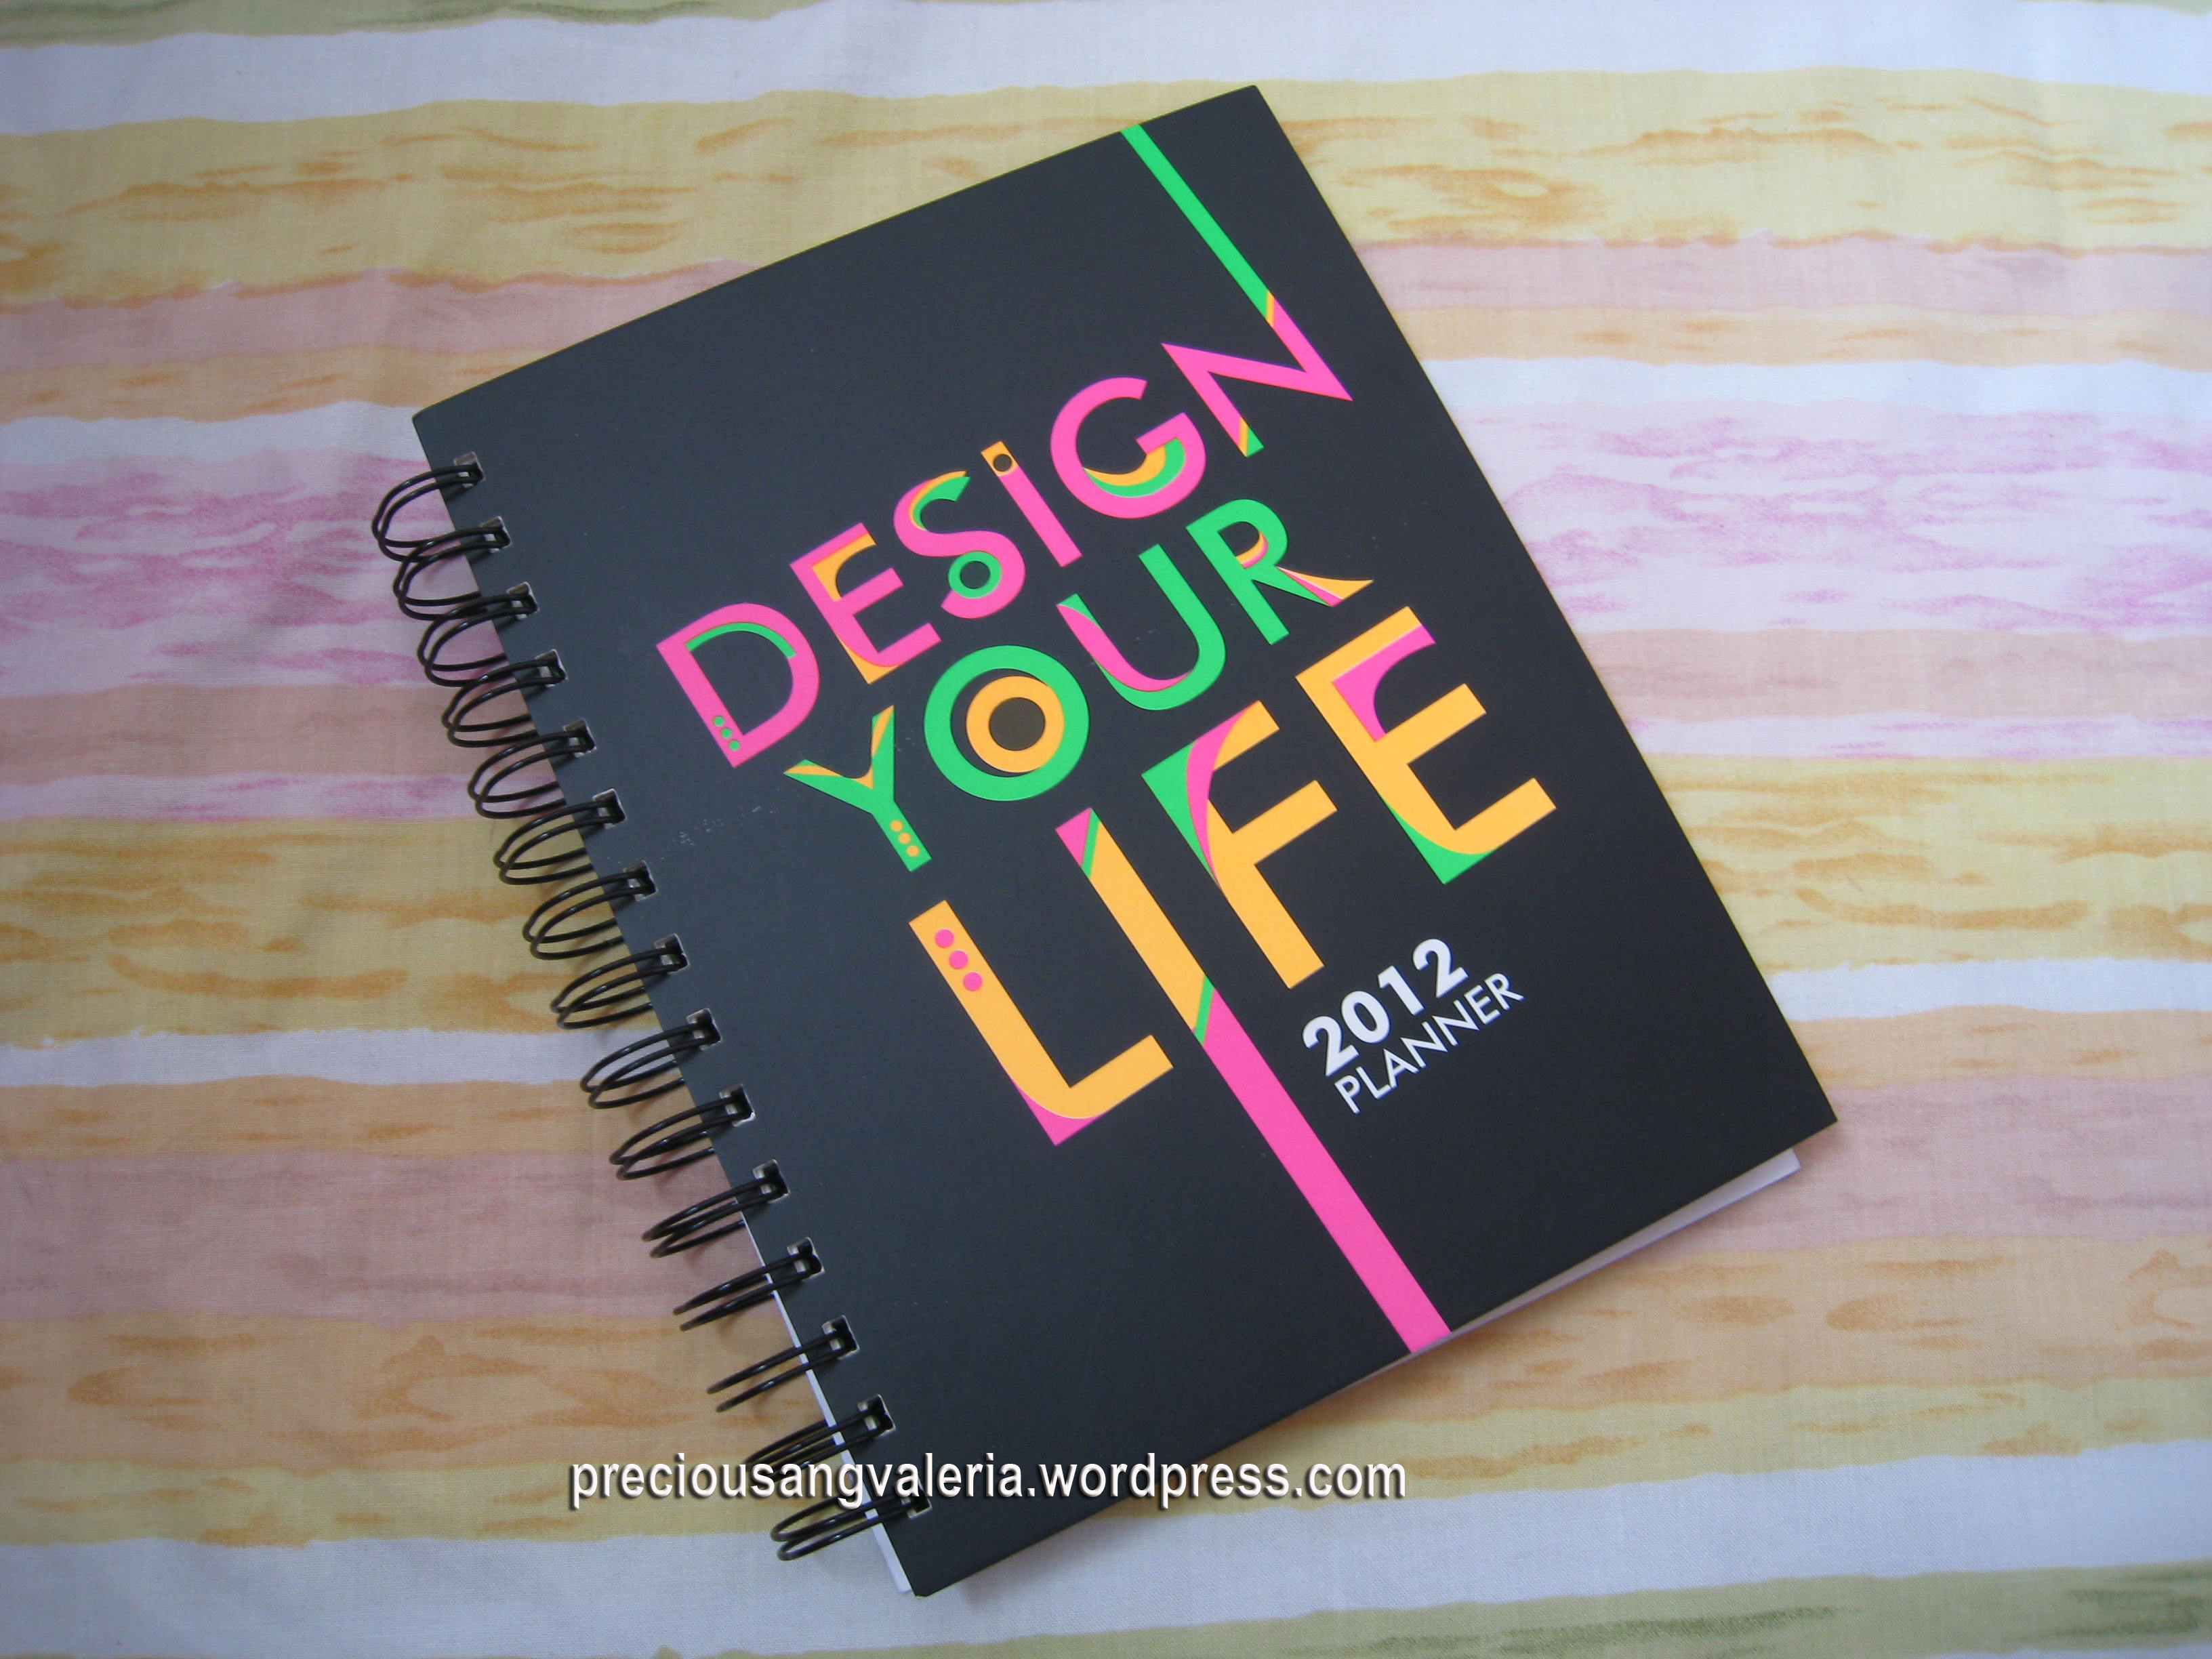 Design your life planner preciousang valeria for Planner design